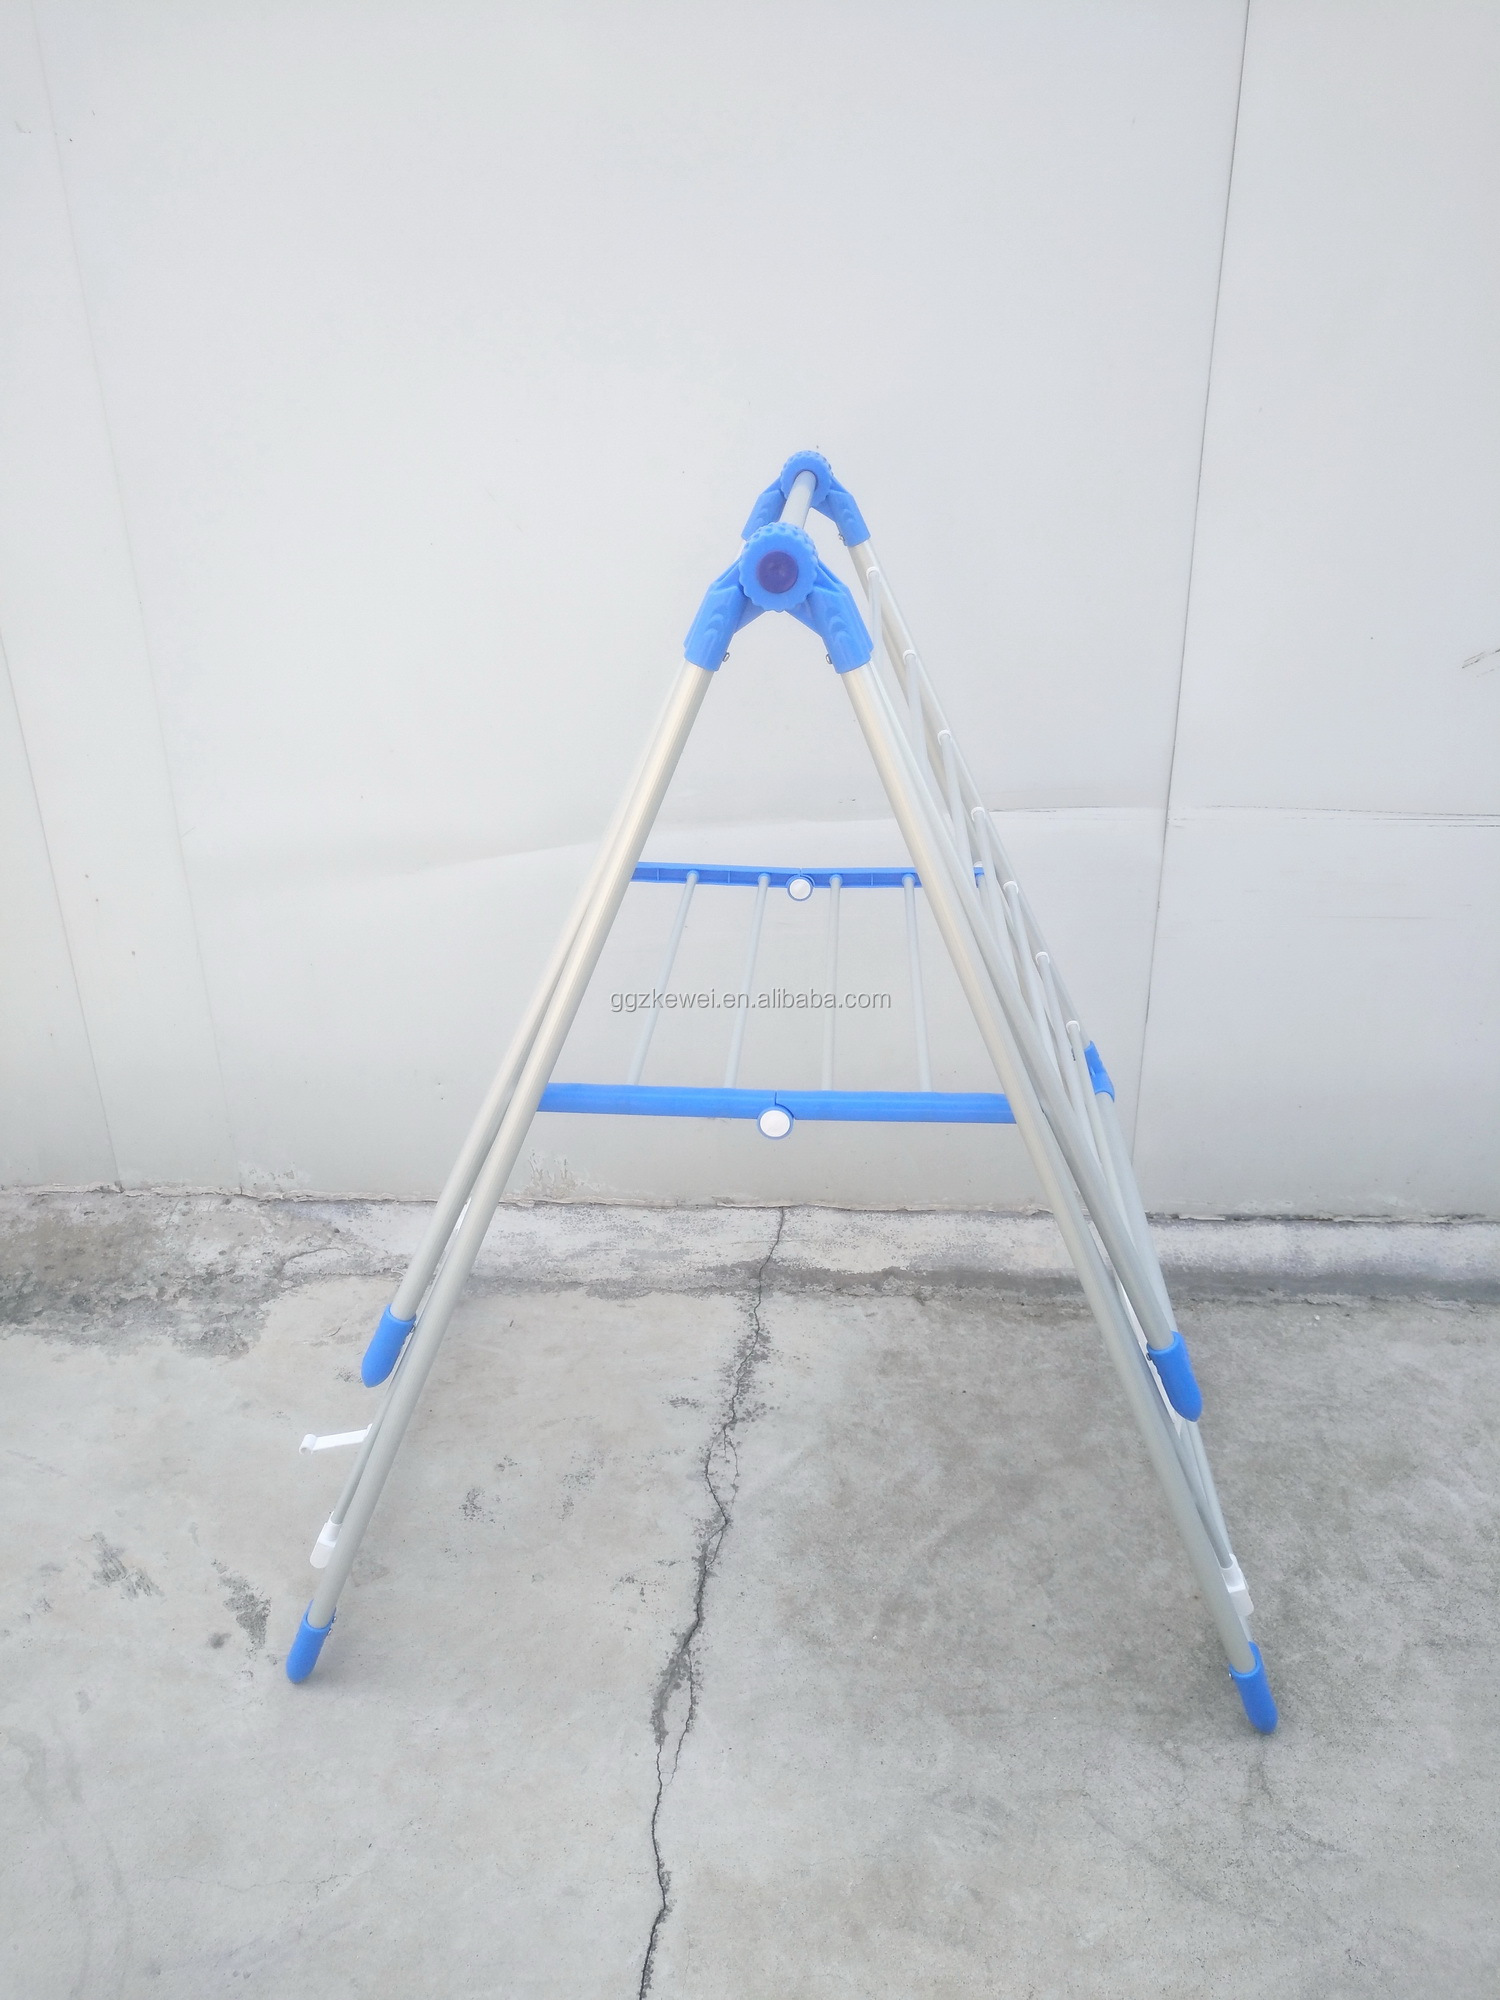 Folding metal clothes drying  Rack with durable plastic jointed parts in blue, factory wholesale